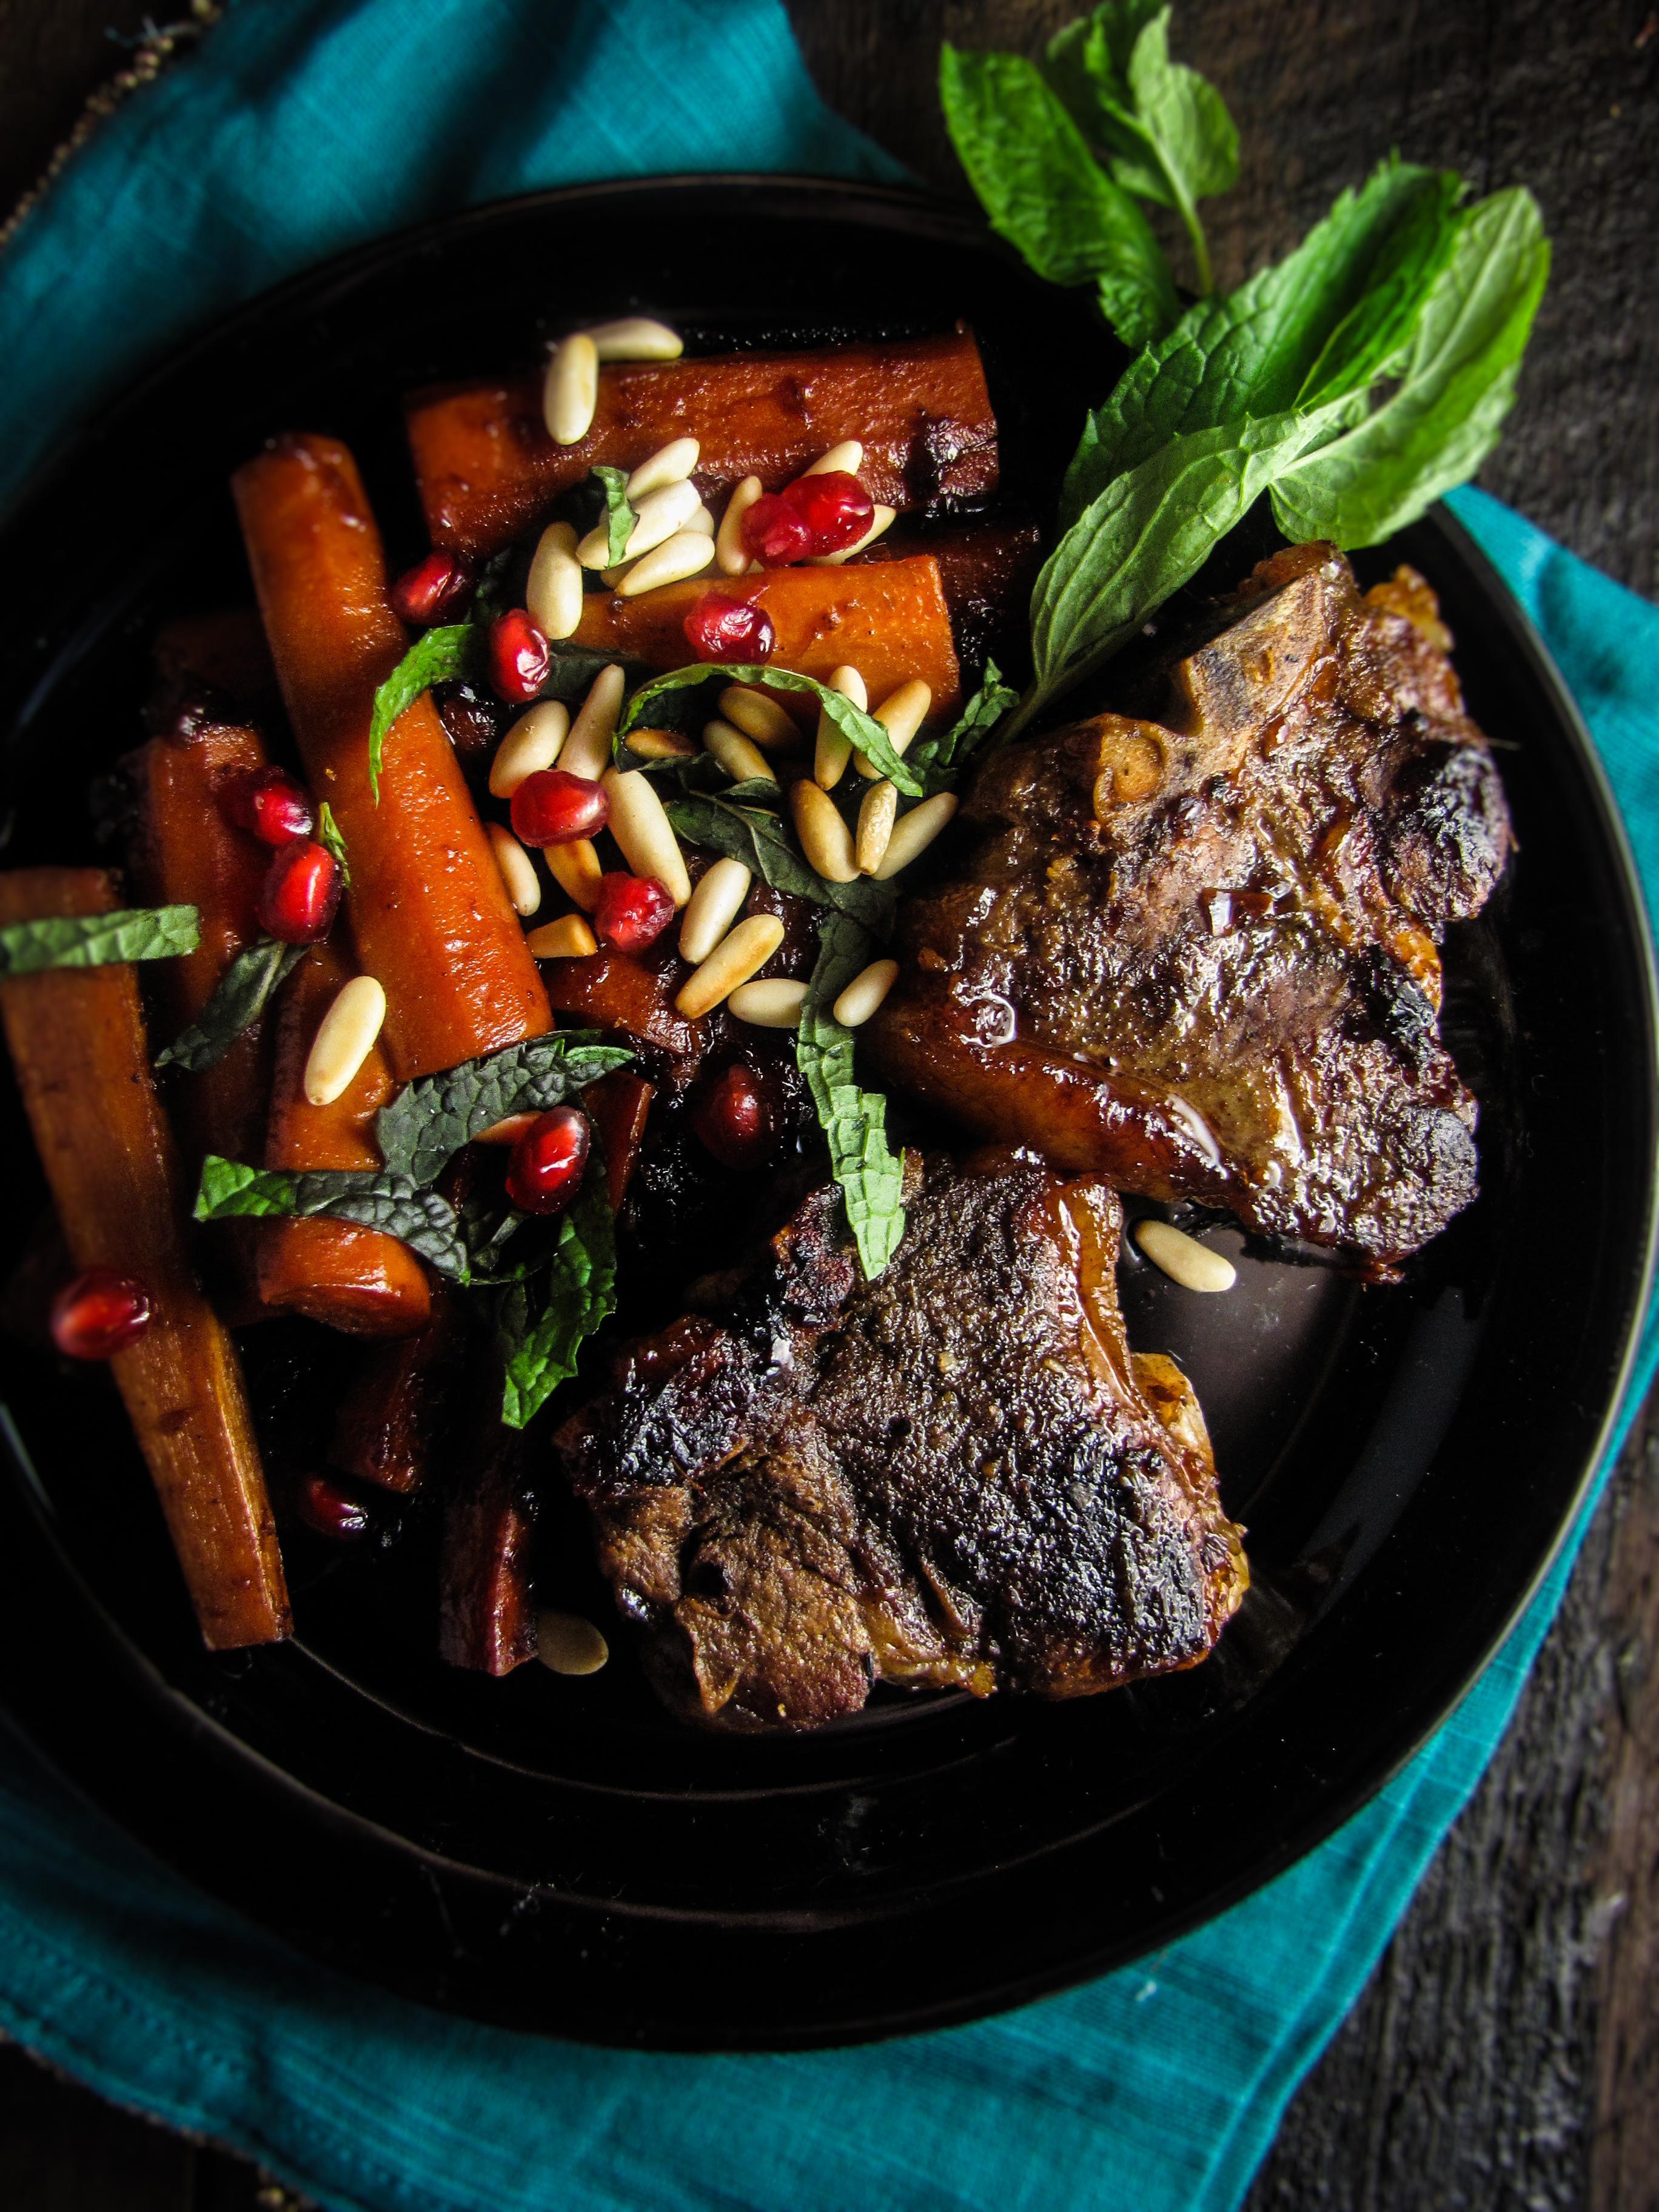 The Great Meat Cookbook: Pomegranate-Glazed Lamb Chops and Carrots